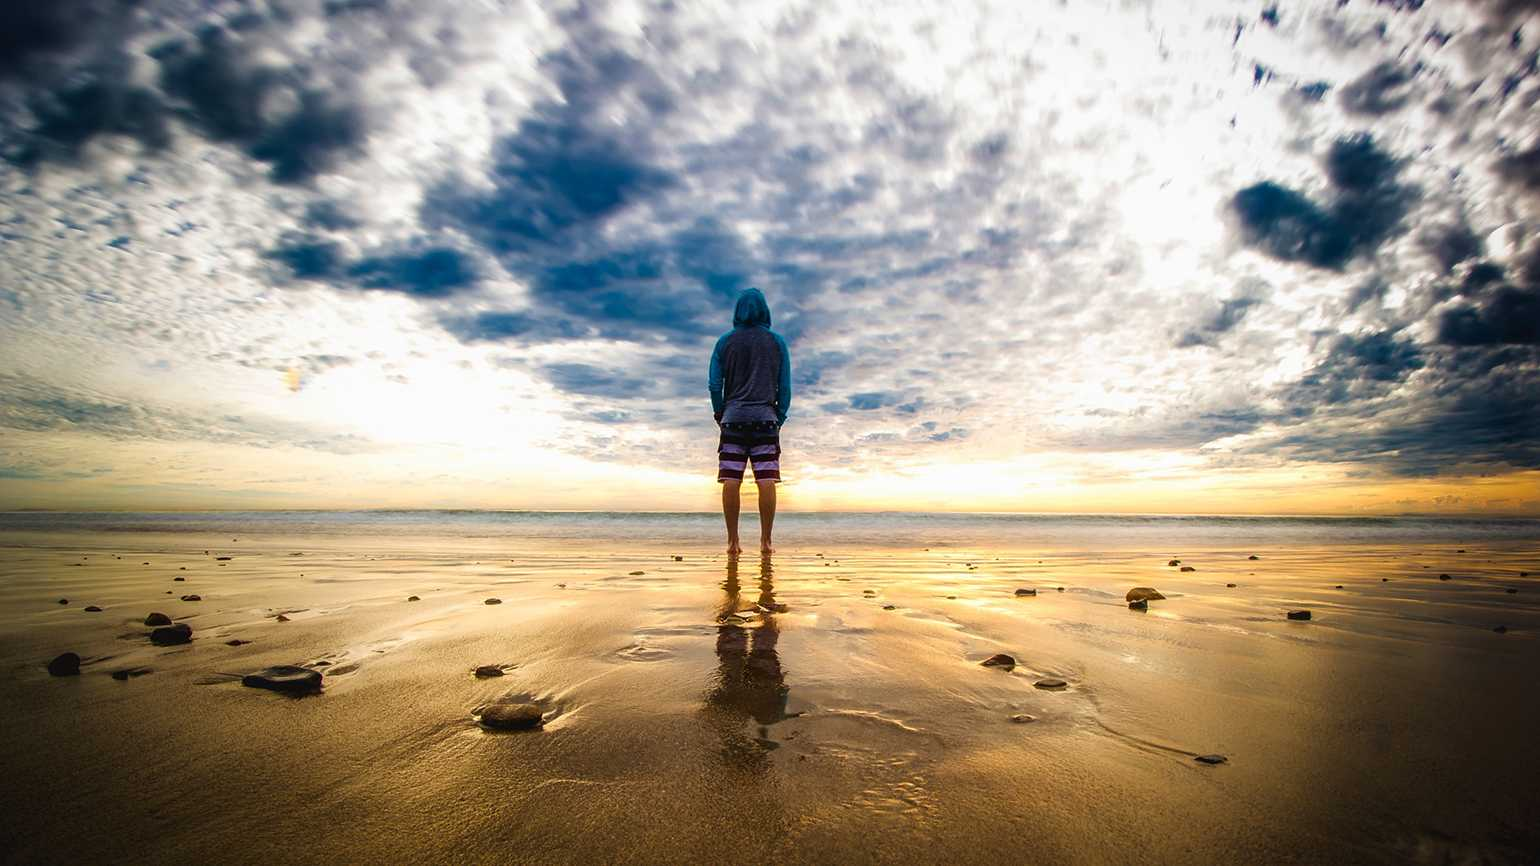 A young man looks out at a sunrise over the ocean